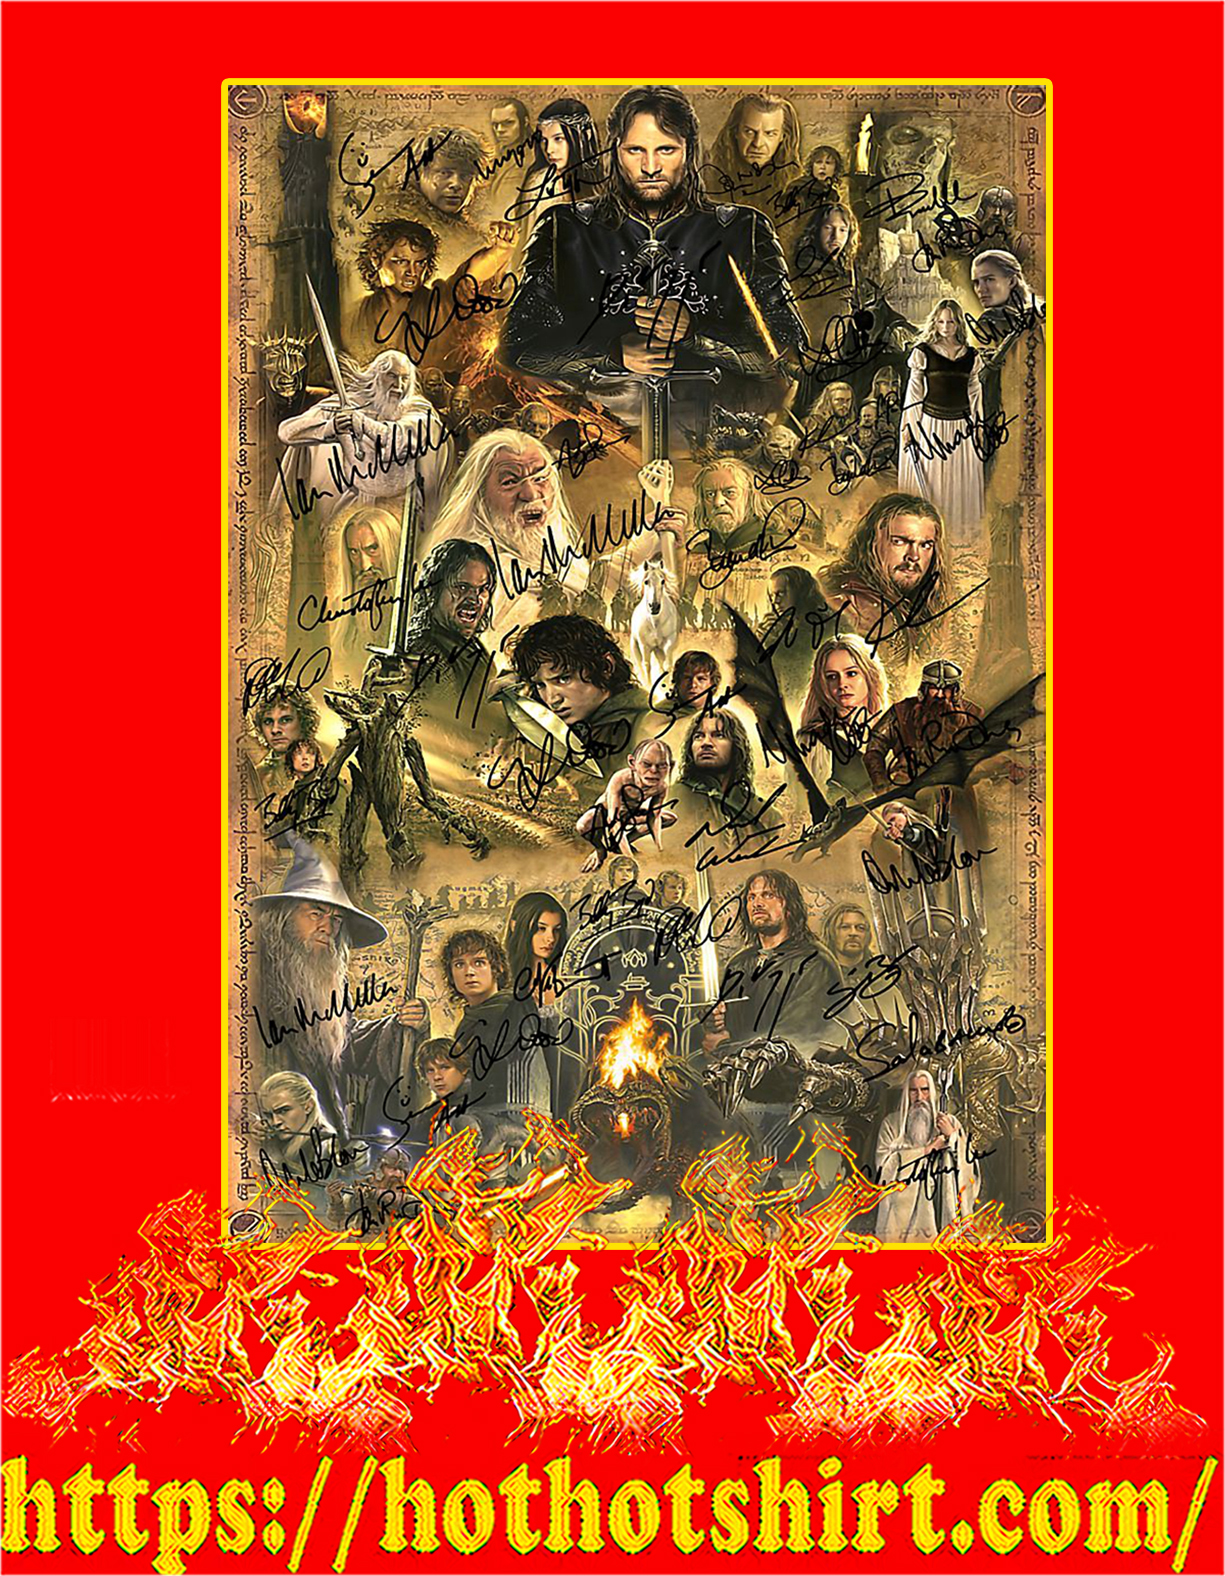 The lord of the rings actor signature poster - A4